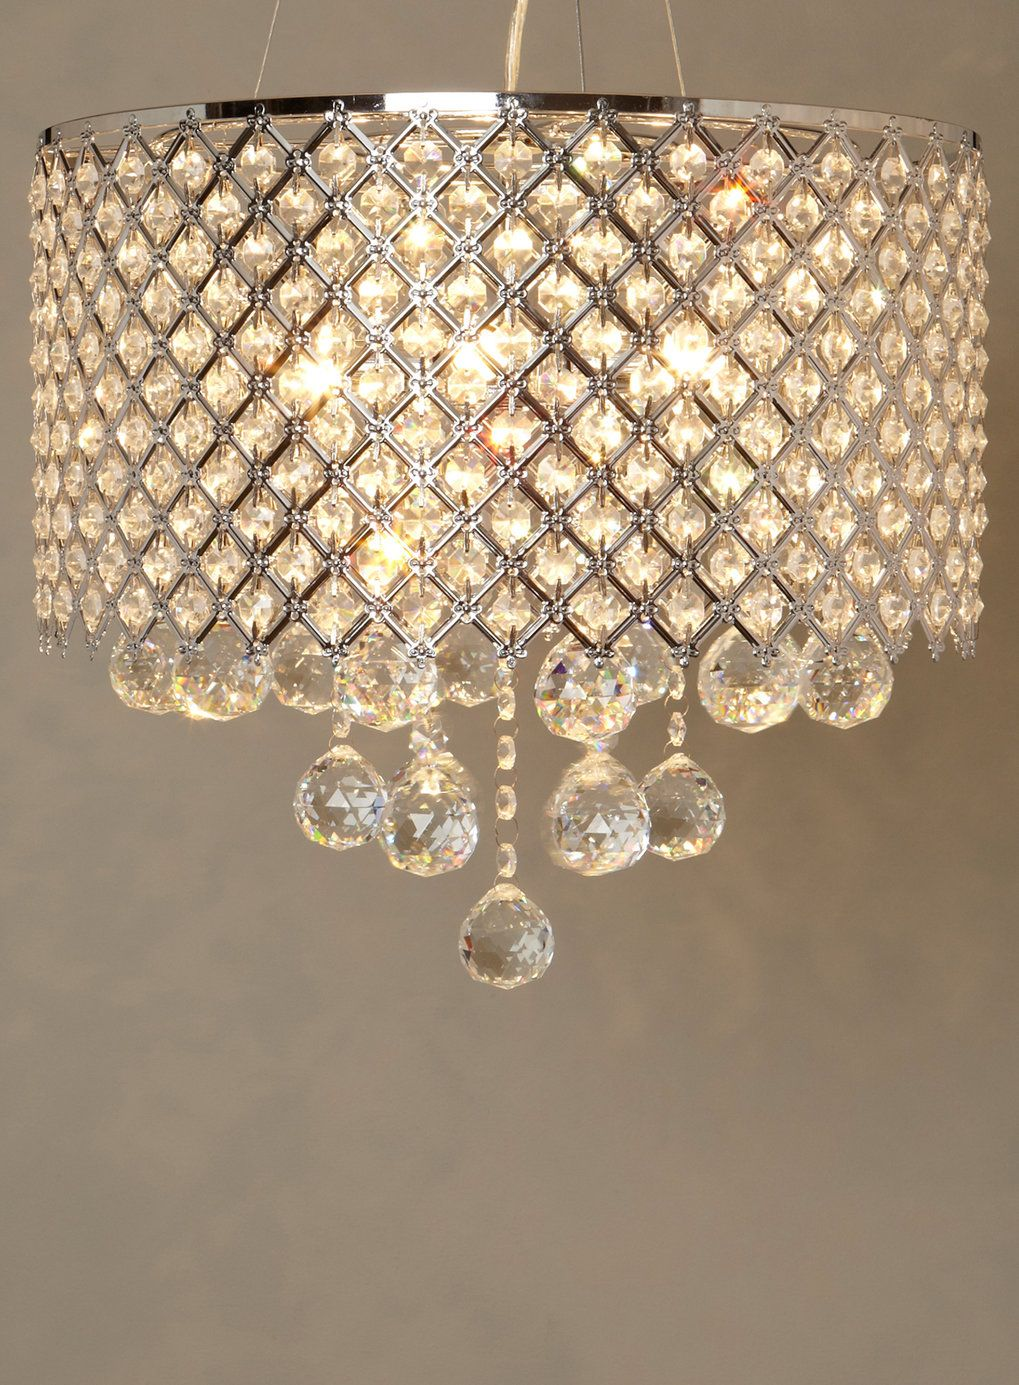 Bhs ceiling lights crystal theteenline chrome petra pendant ceiling lights home lighting furniture arubaitofo Image collections